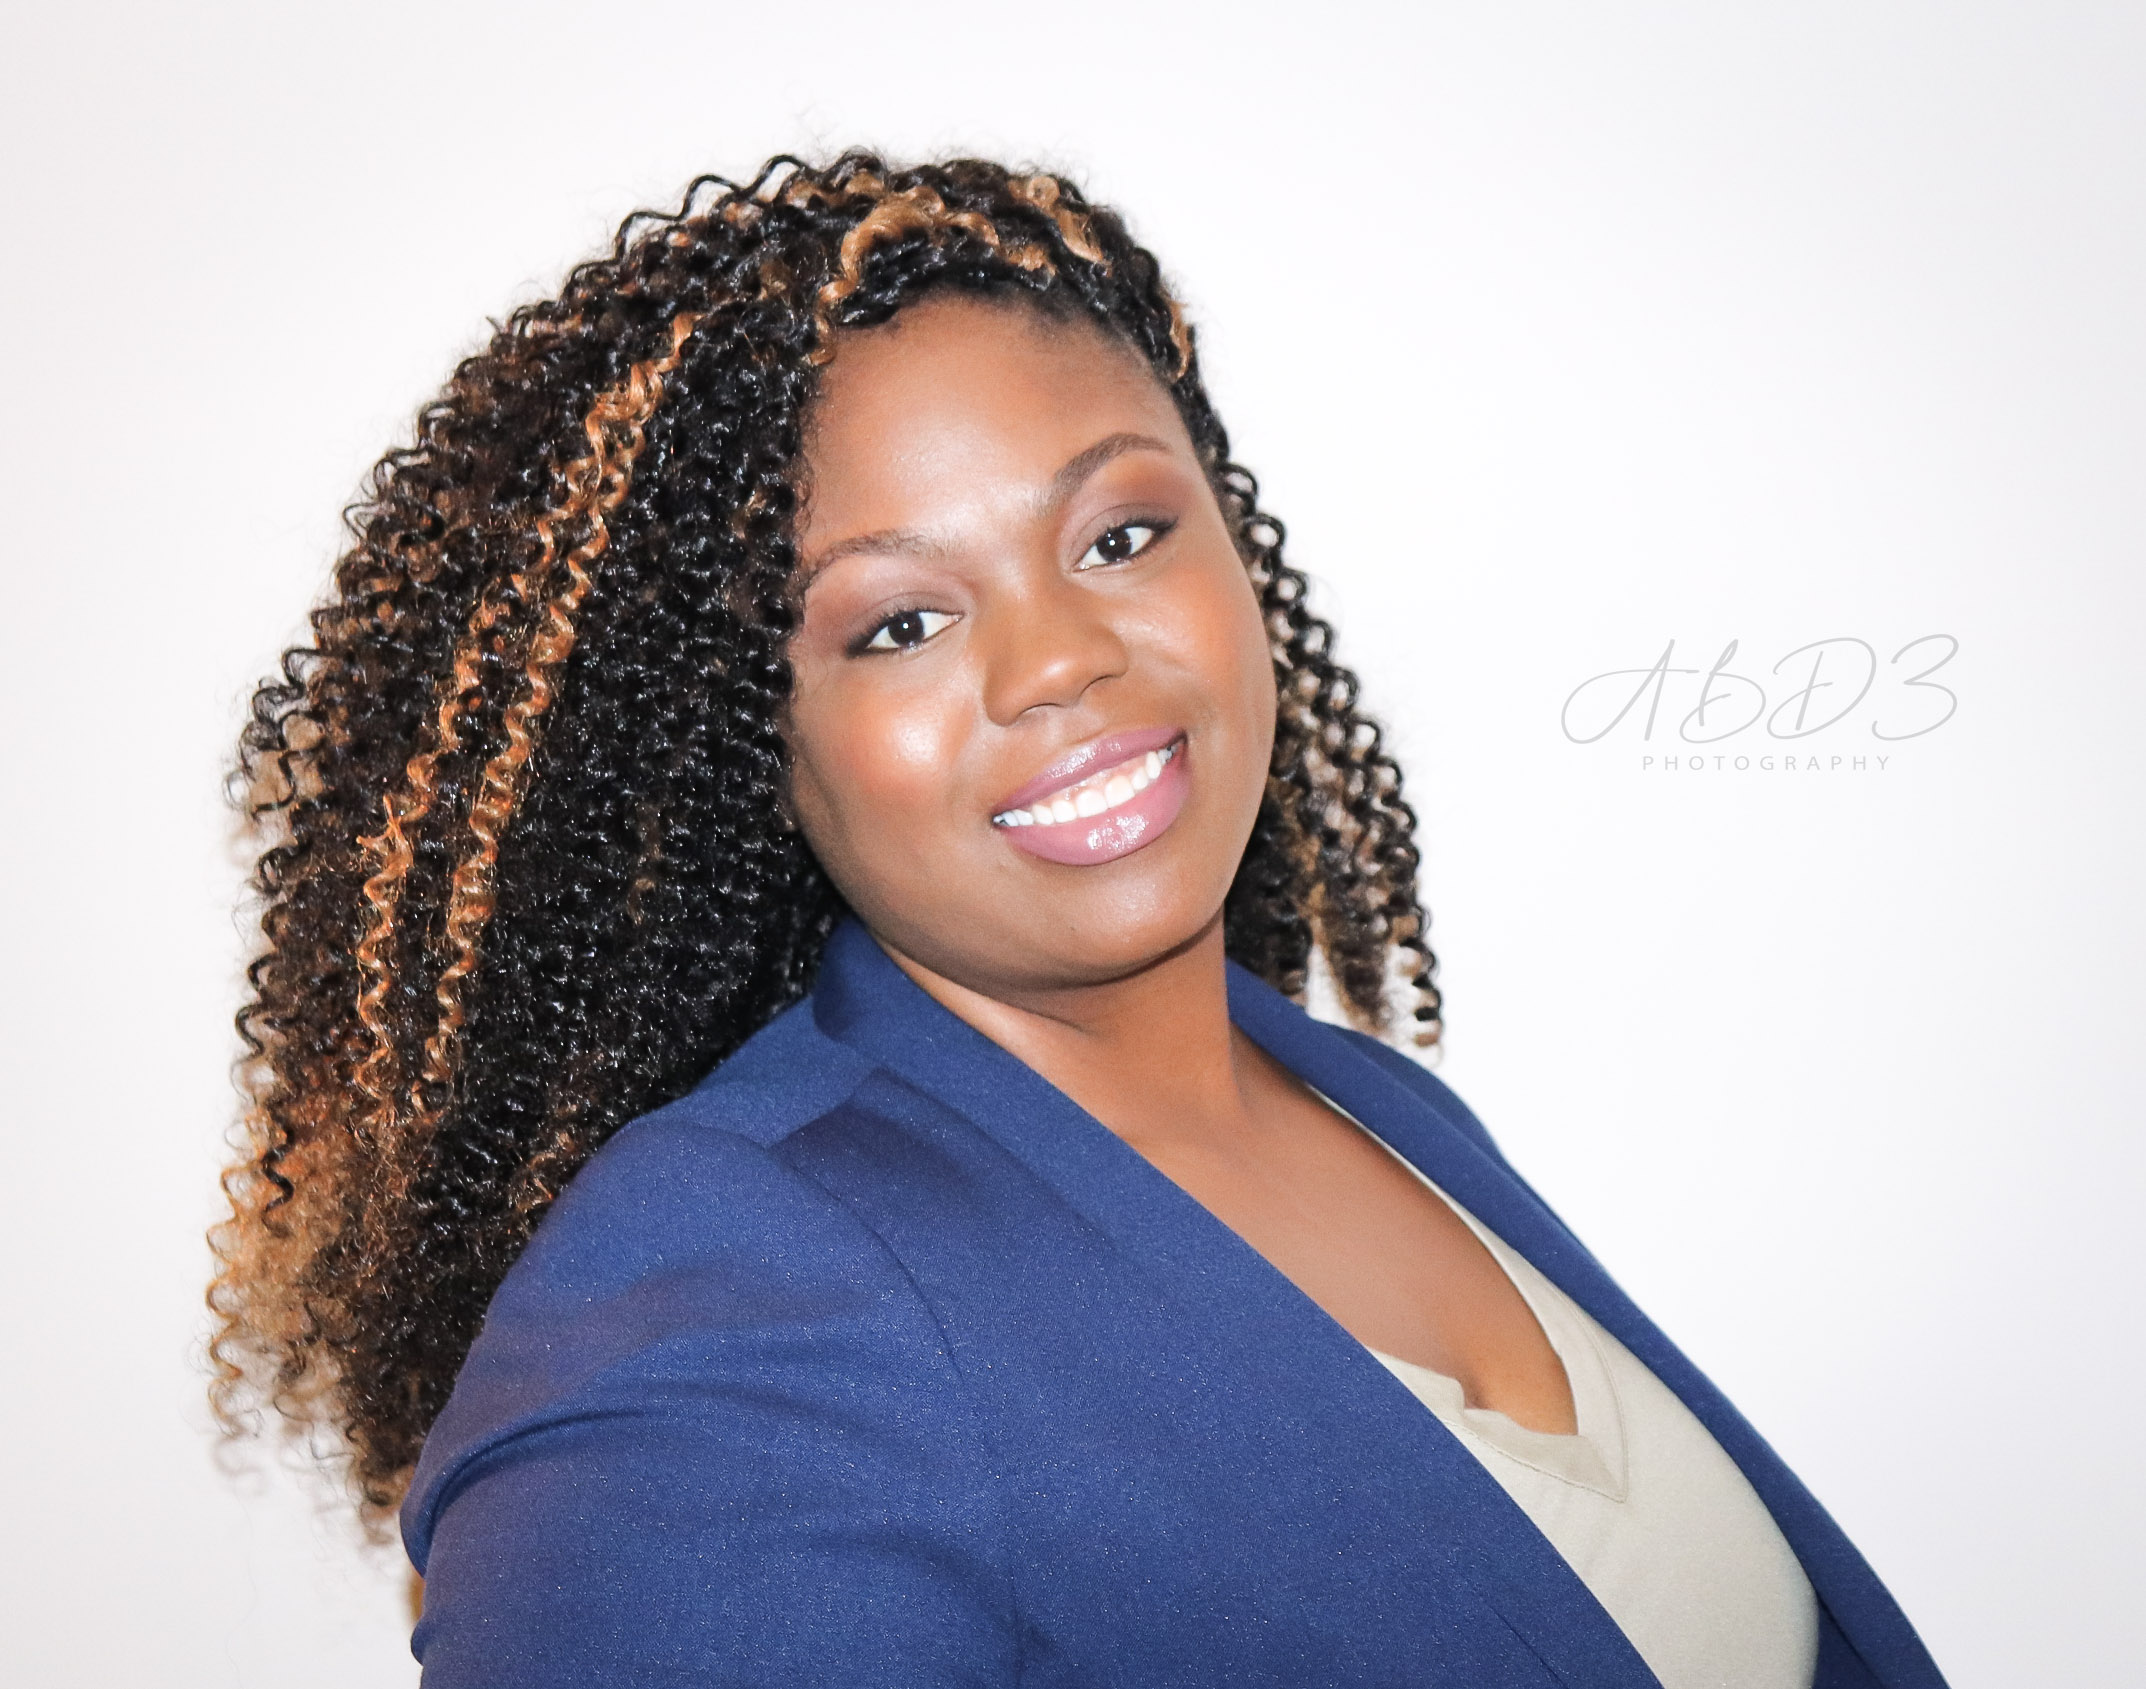 Portia Hines, Licensed Professional Counselor